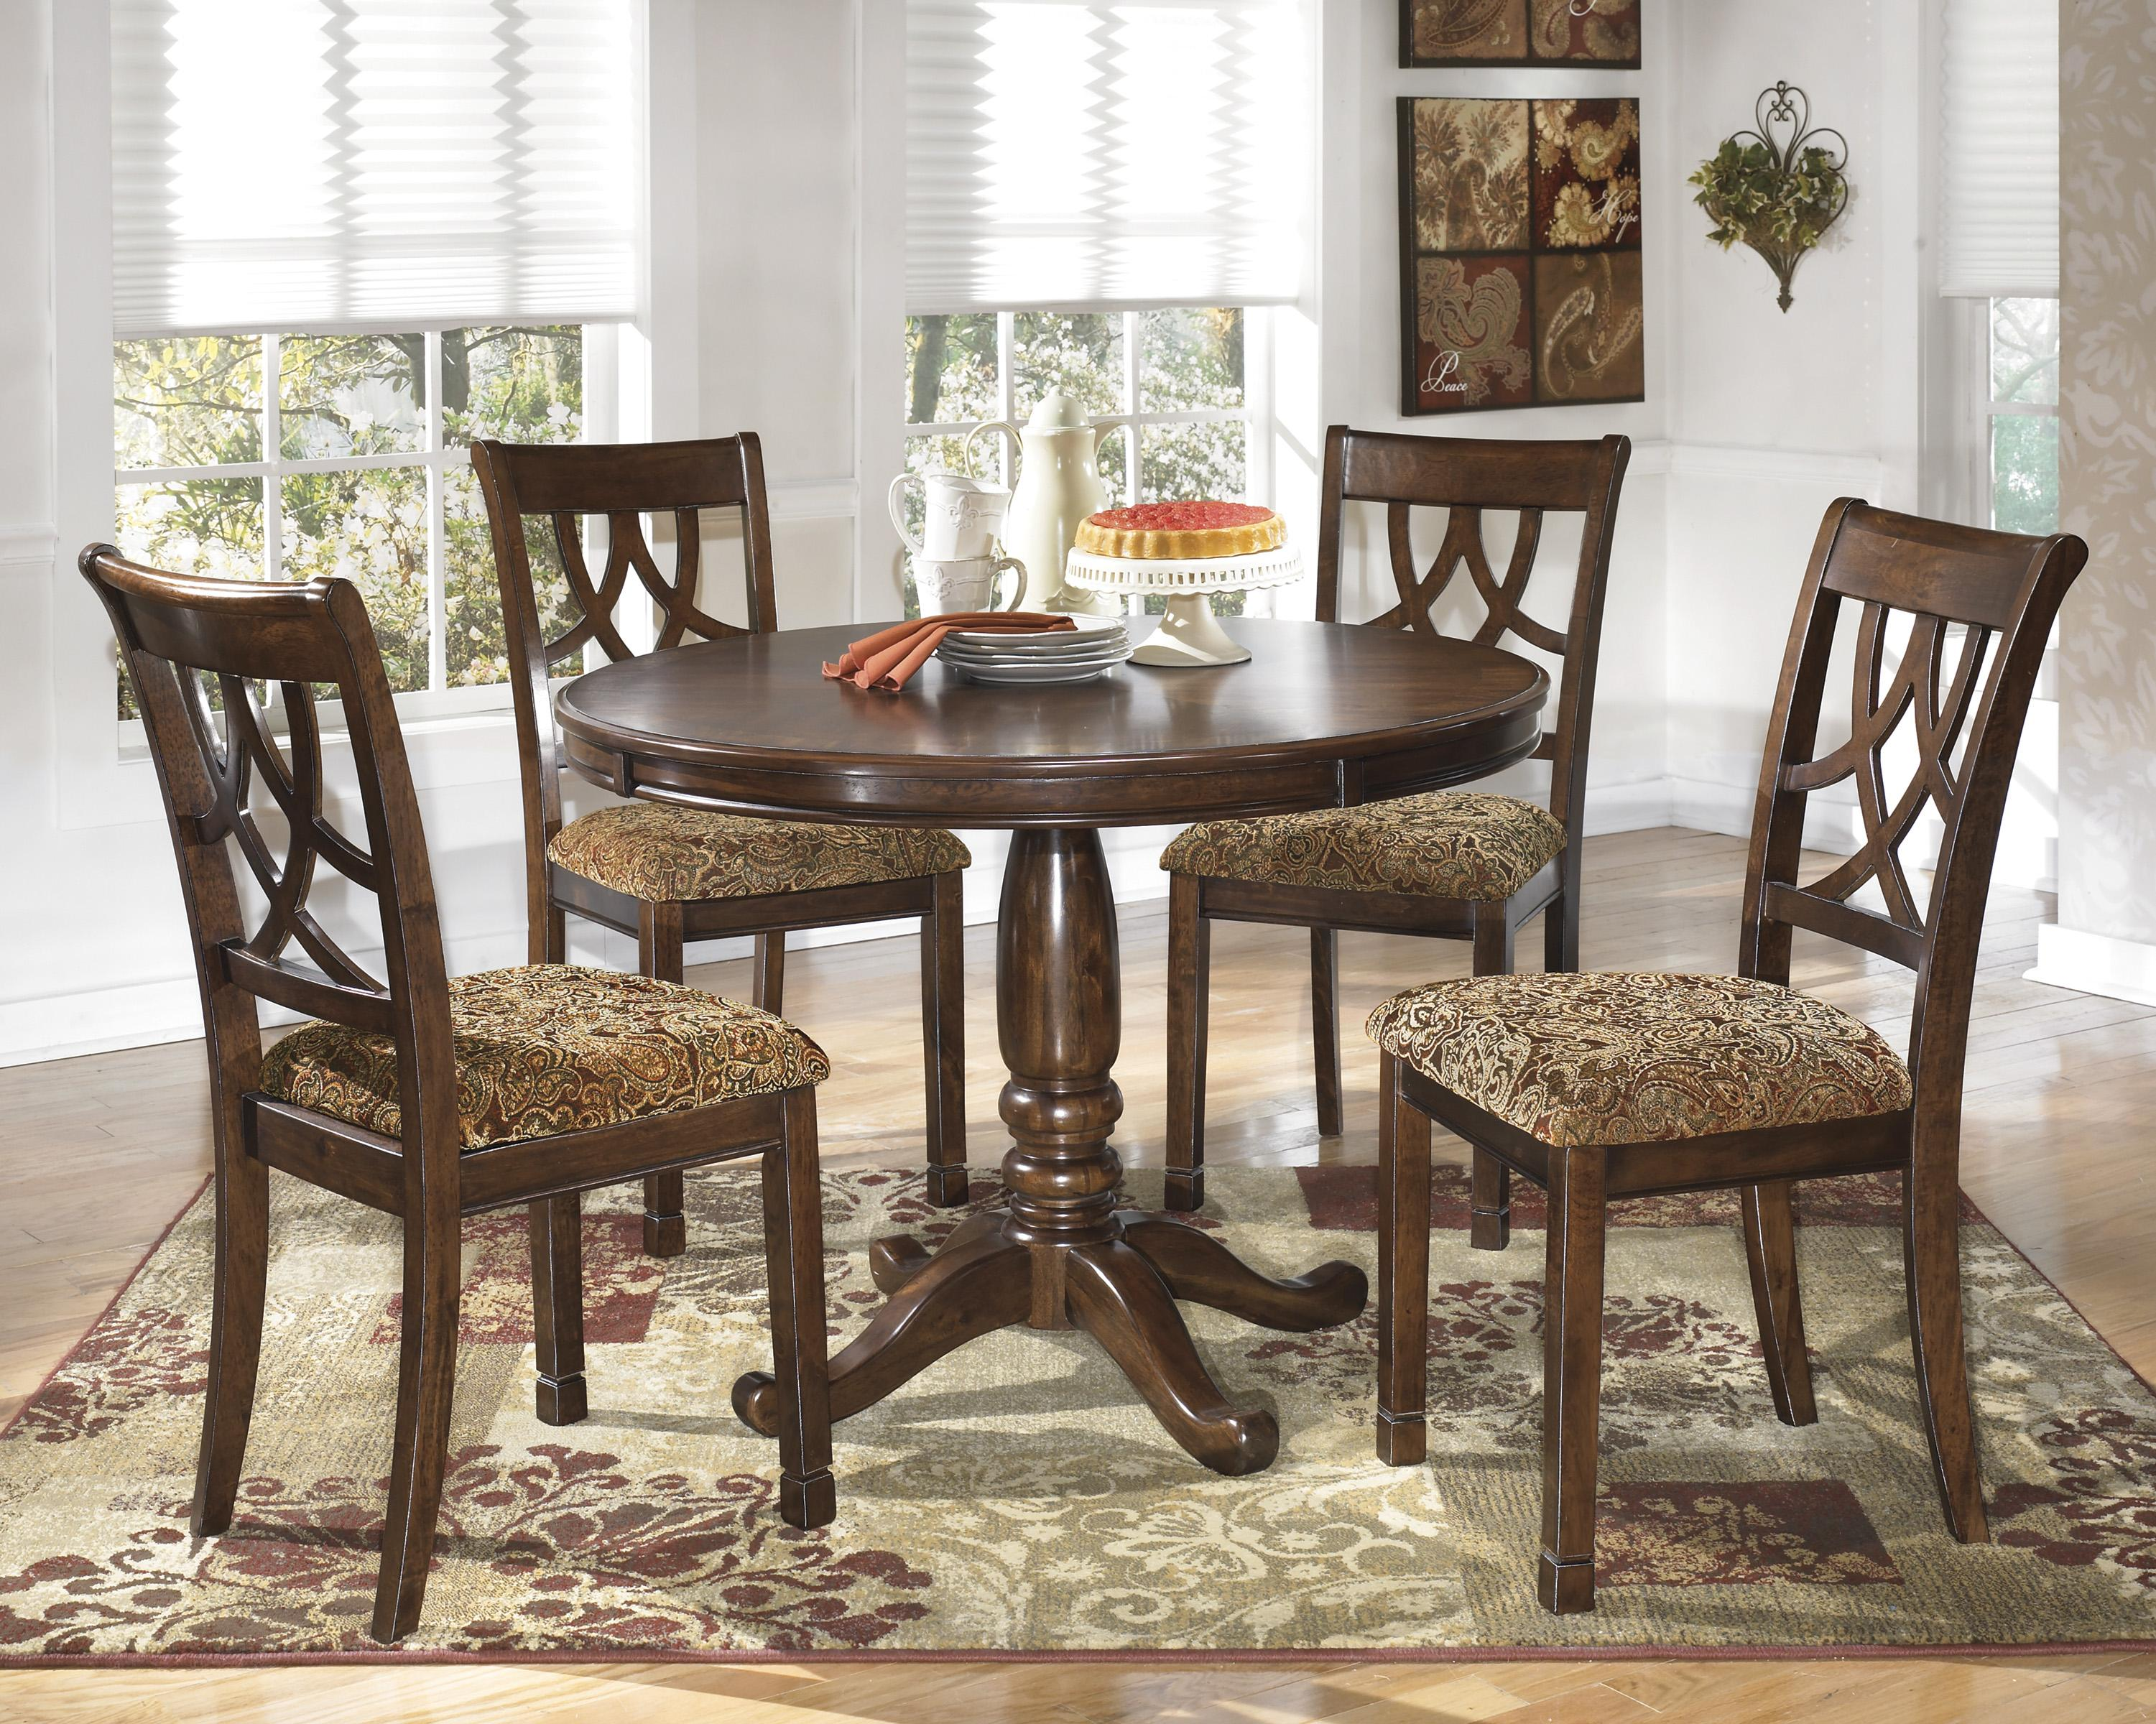 Ashley Dining Room Chairs Signature Design By Ashley Leahlyn D436 01 Cherry Finish